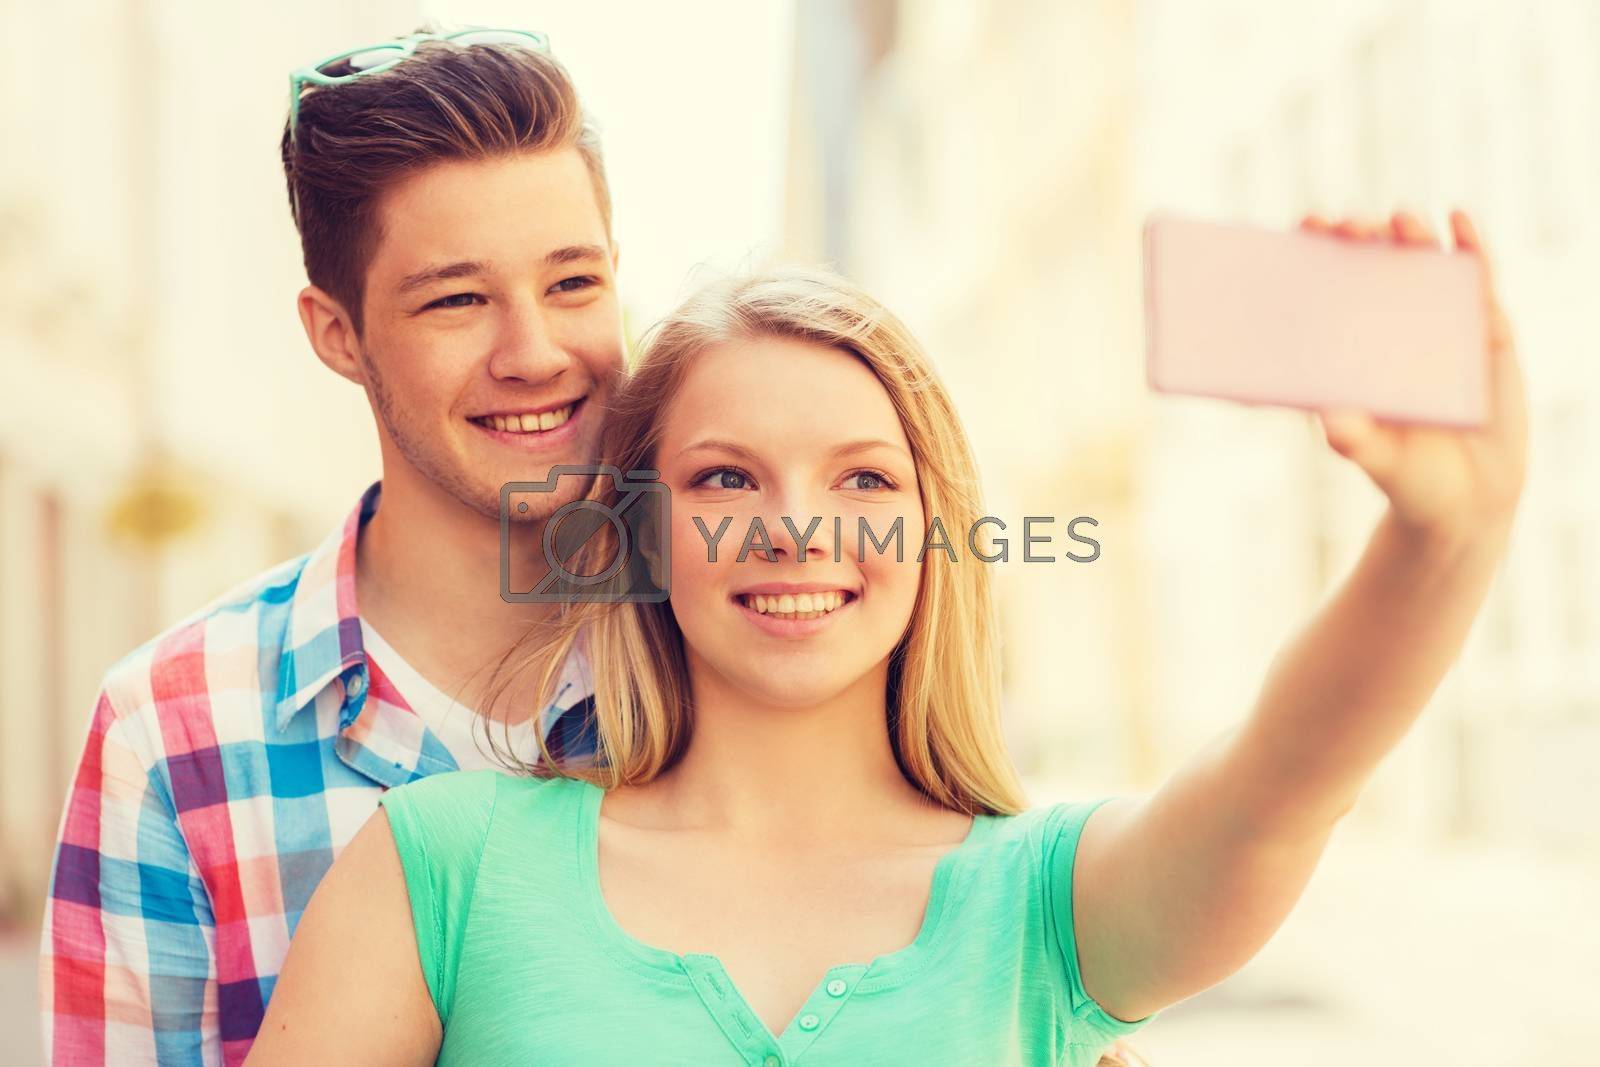 Royalty free image of smiling couple with smartphone in city by dolgachov